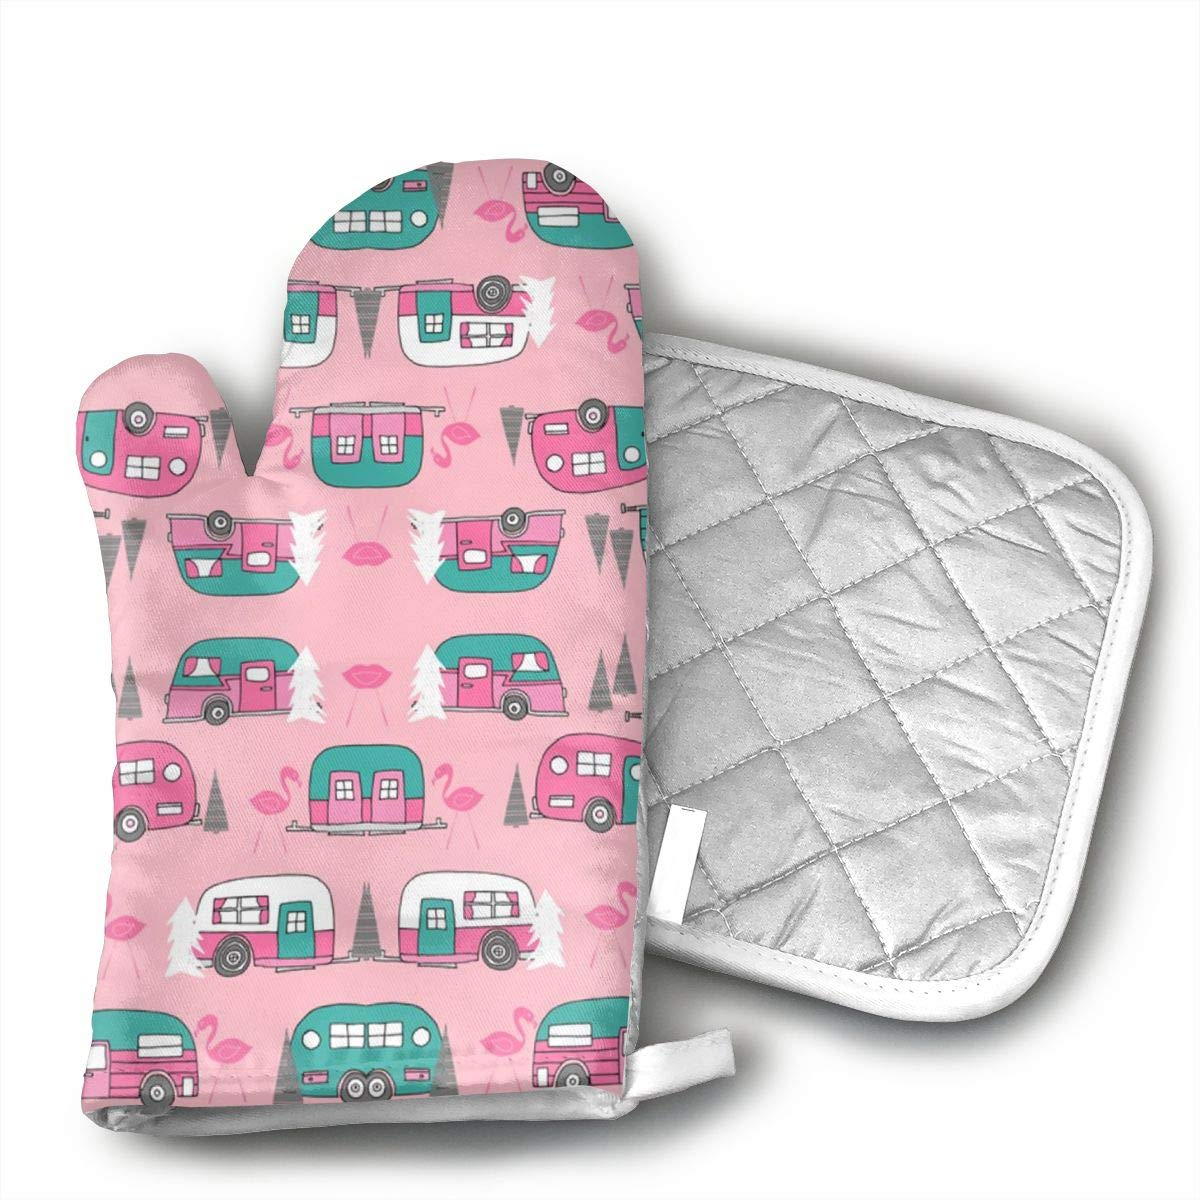 CHWEYAQ Camper Pink Retro Flamingo Cotton Heat Resistant Double Oven Mitts/Gloves Potholder Extra for Kitchen Cooking Baking